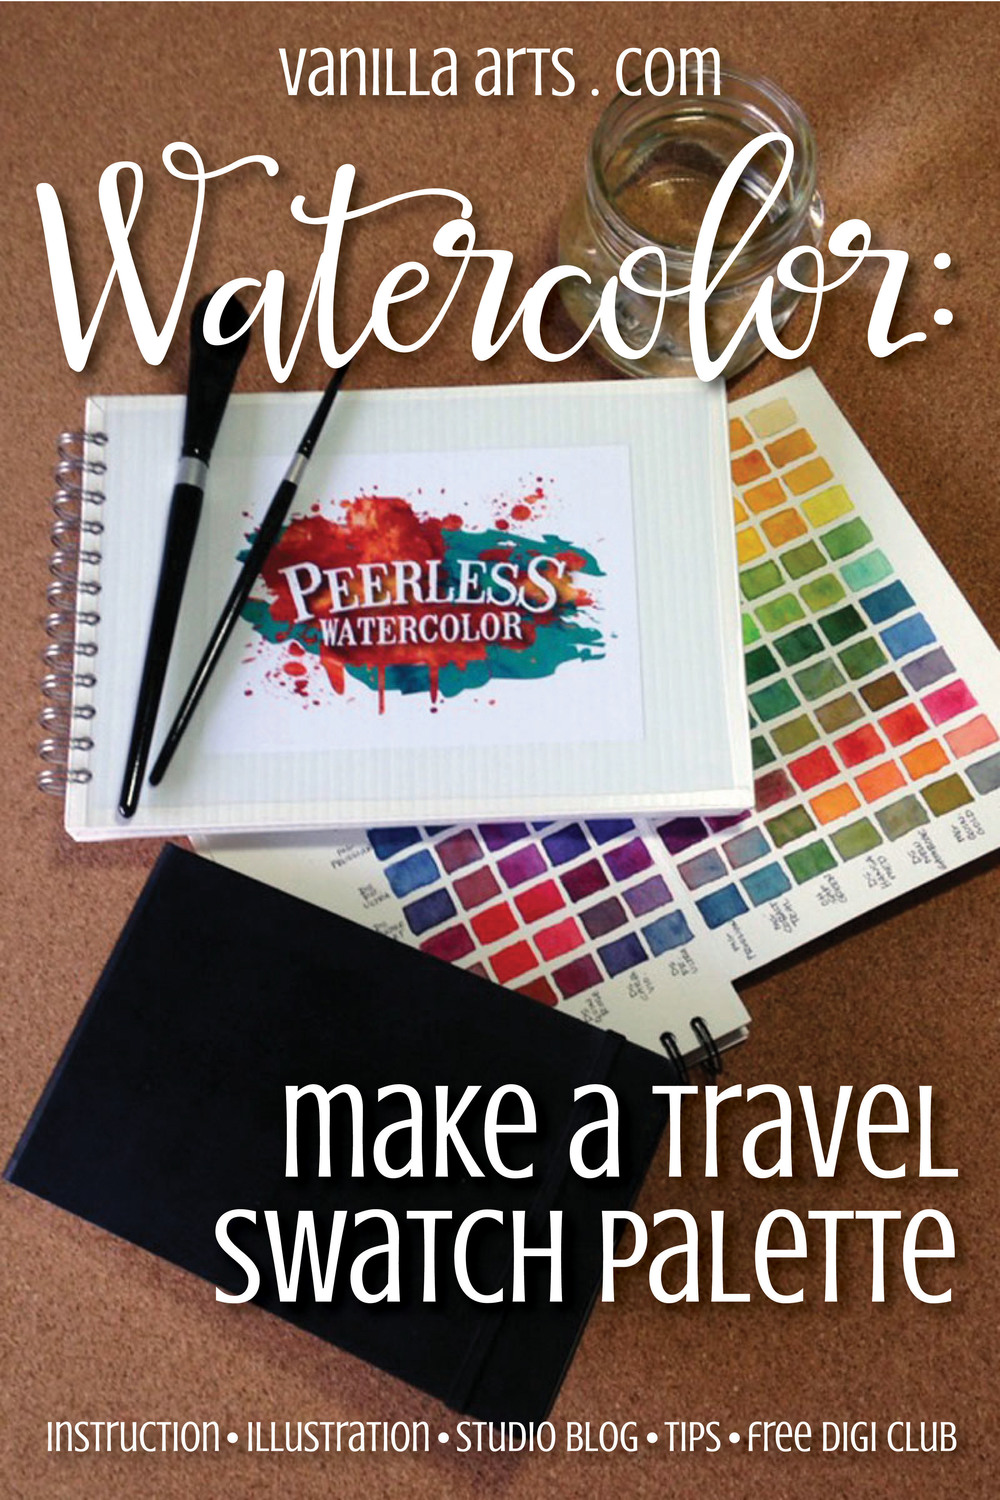 Make a travel palette from Peerless Watercolor Swatches | VanillaArts.com